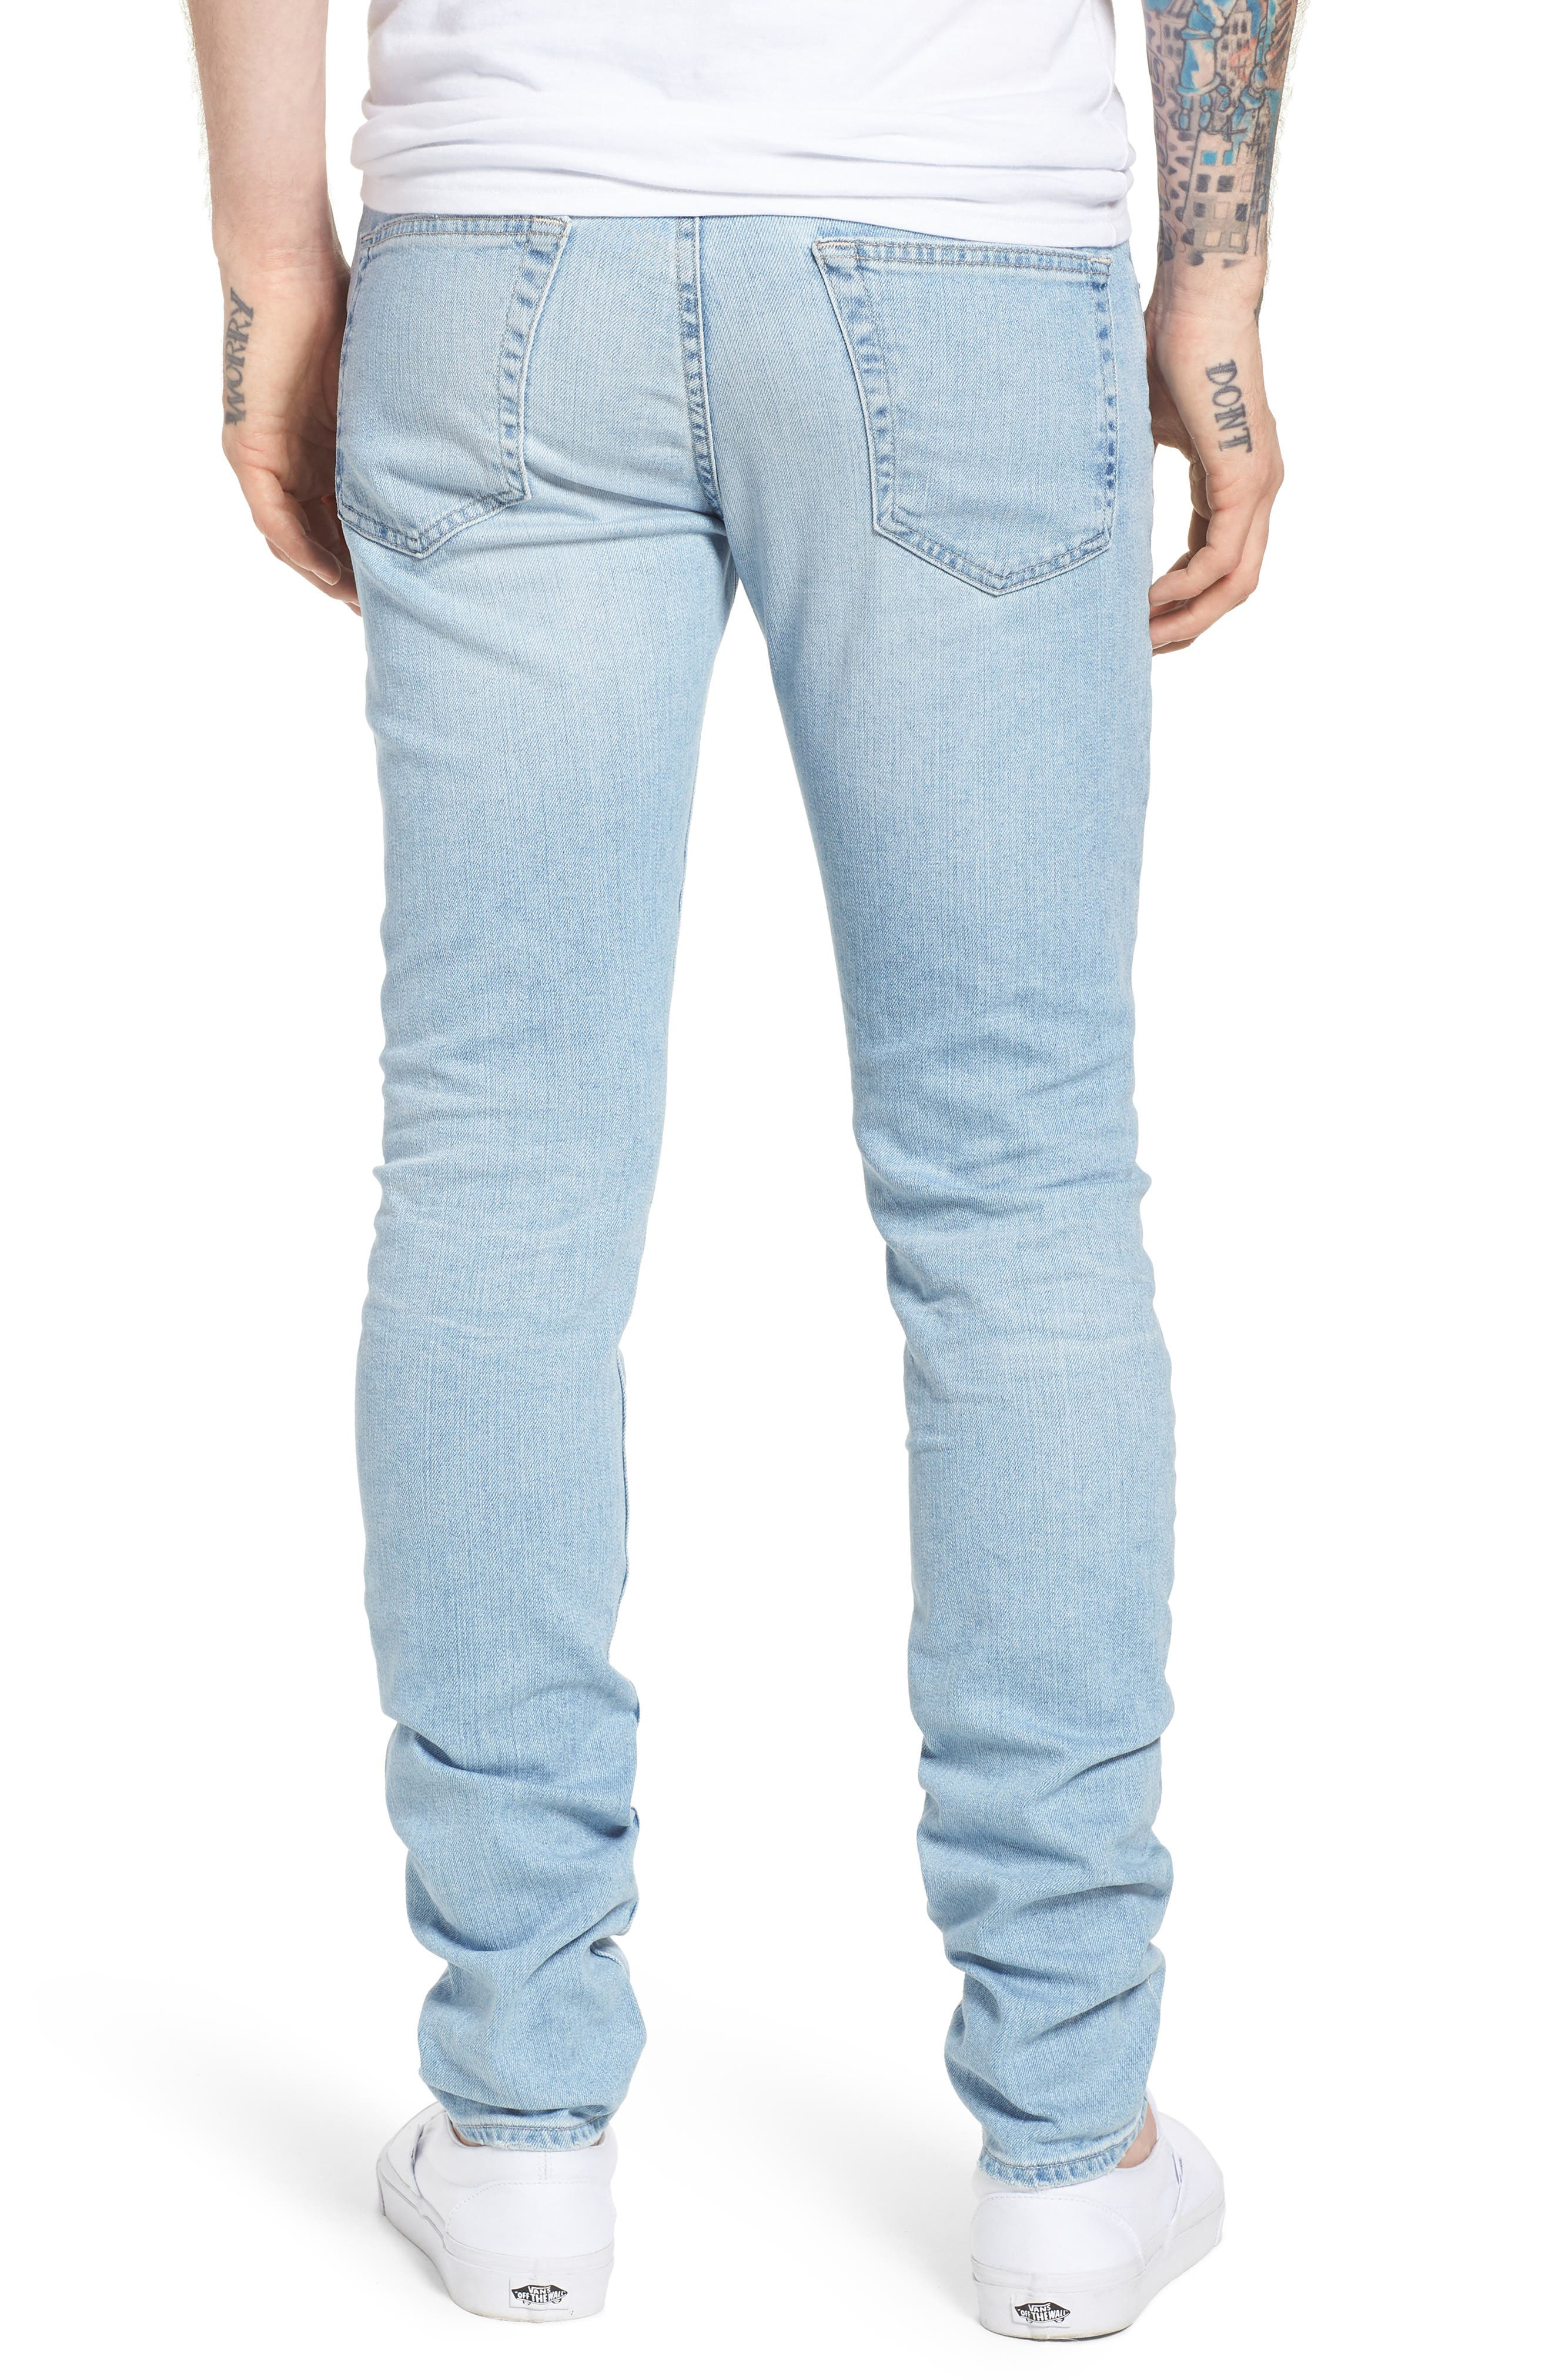 Stockton Skinny Fit Jeans,                             Alternate thumbnail 2, color,                             21 Years Solstice